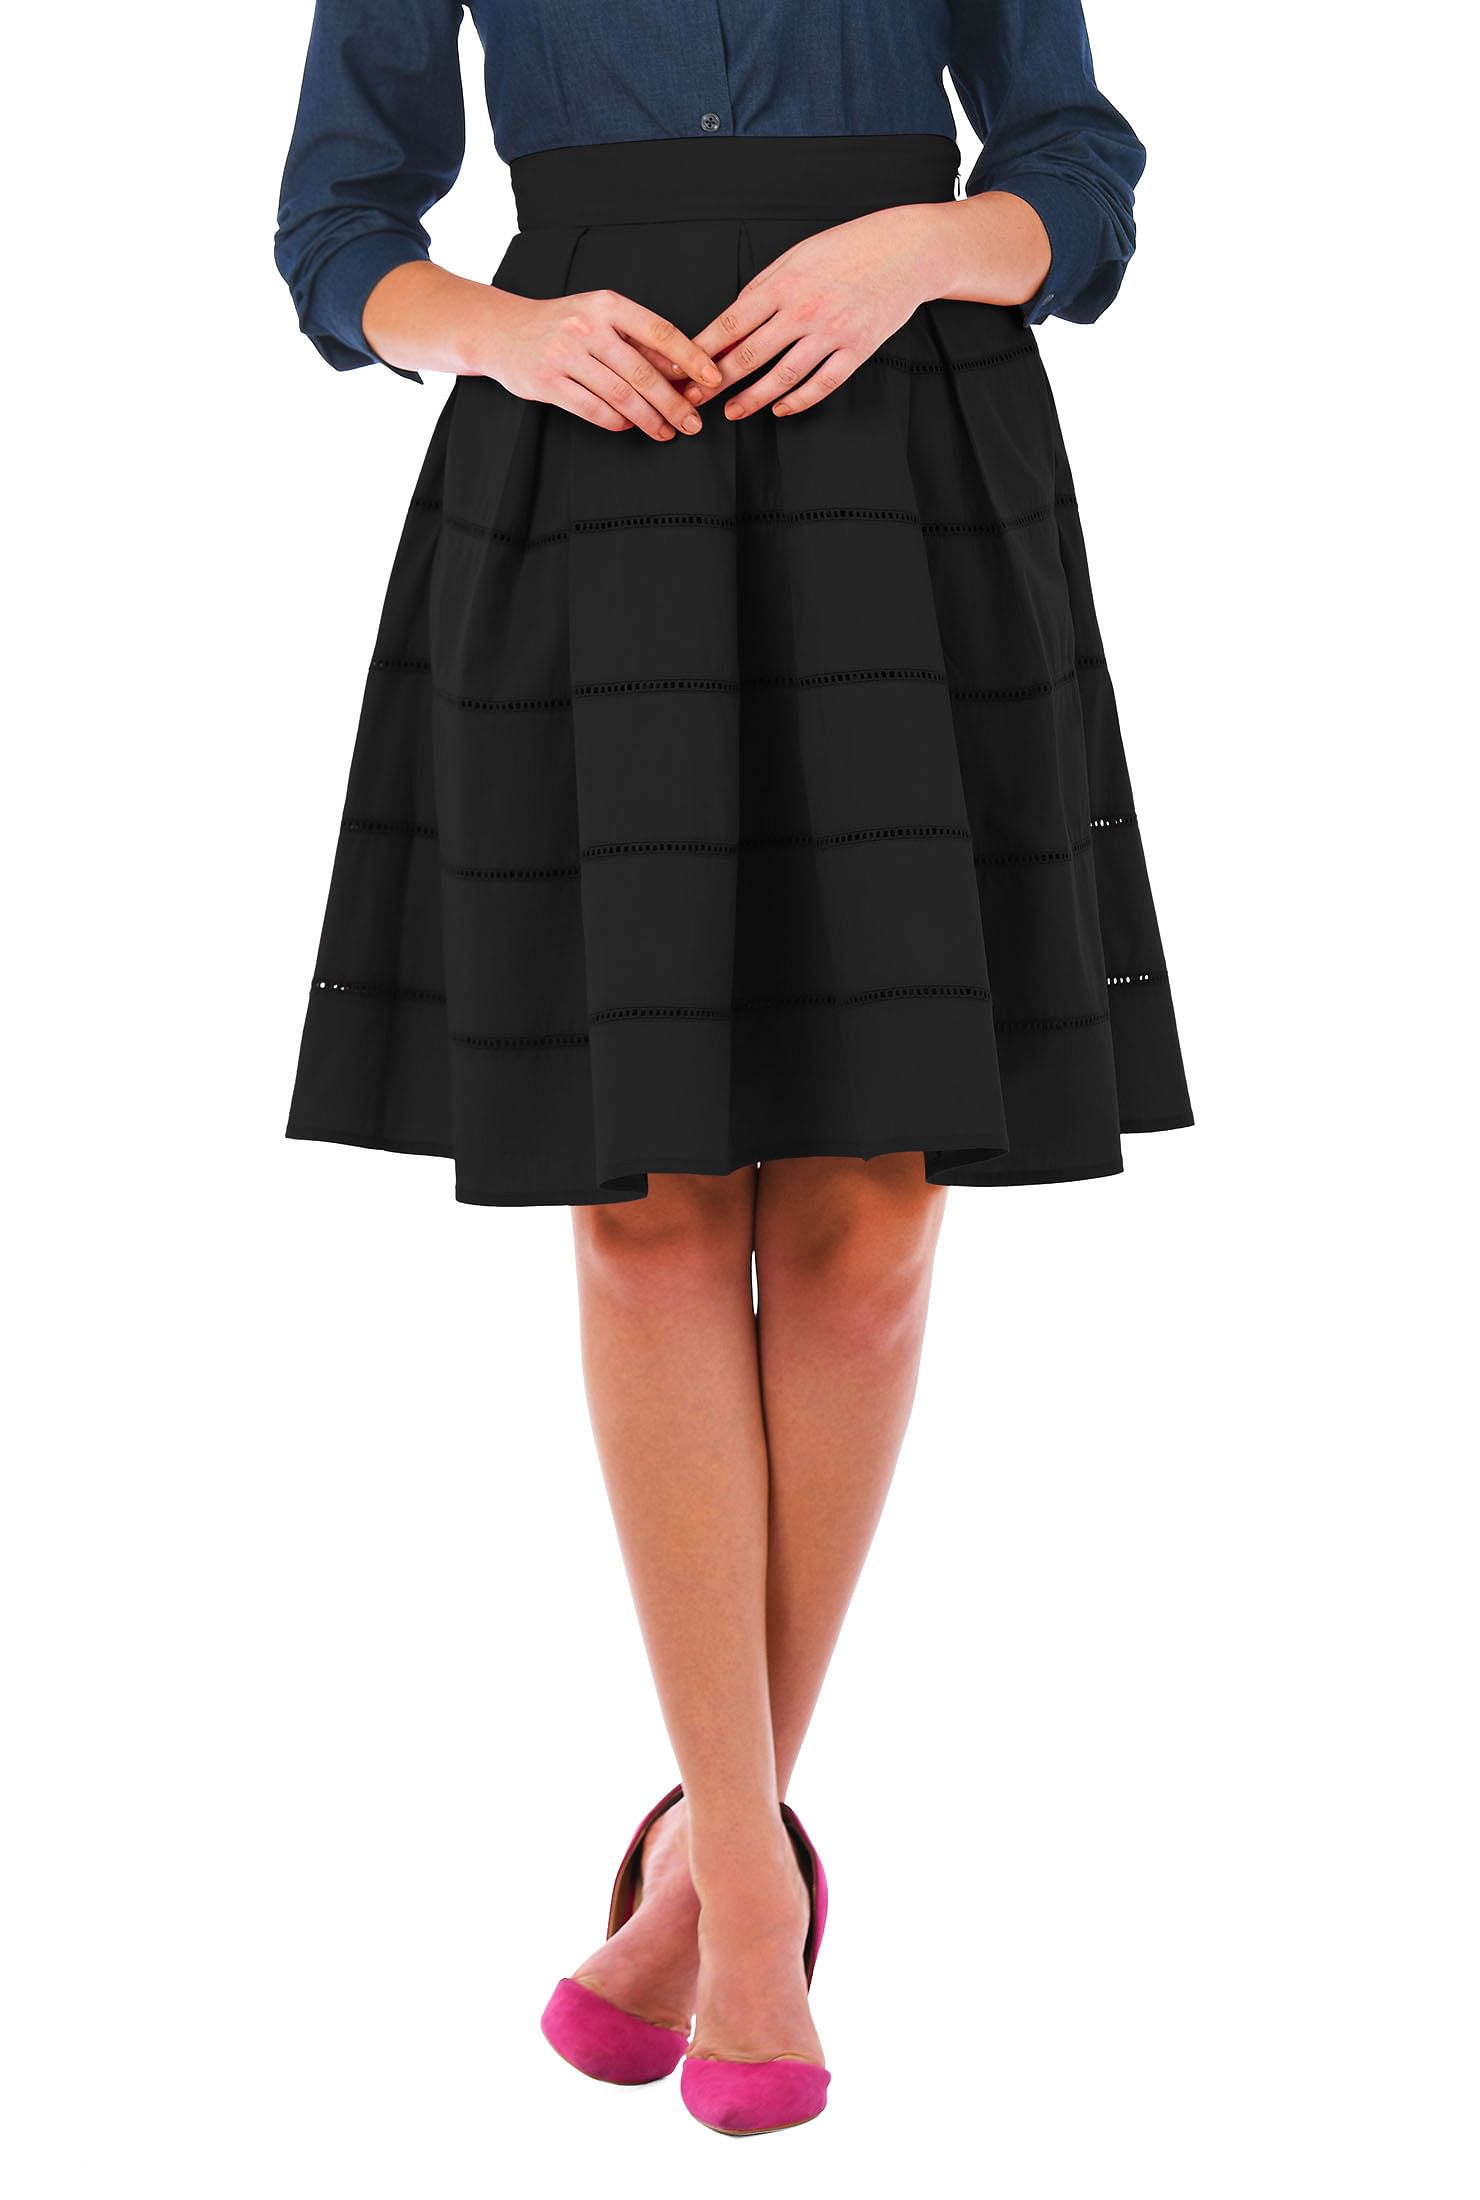 e980217ac8 Above knee length skirts, Black Skirts, Cotton/spandex skirts, day-